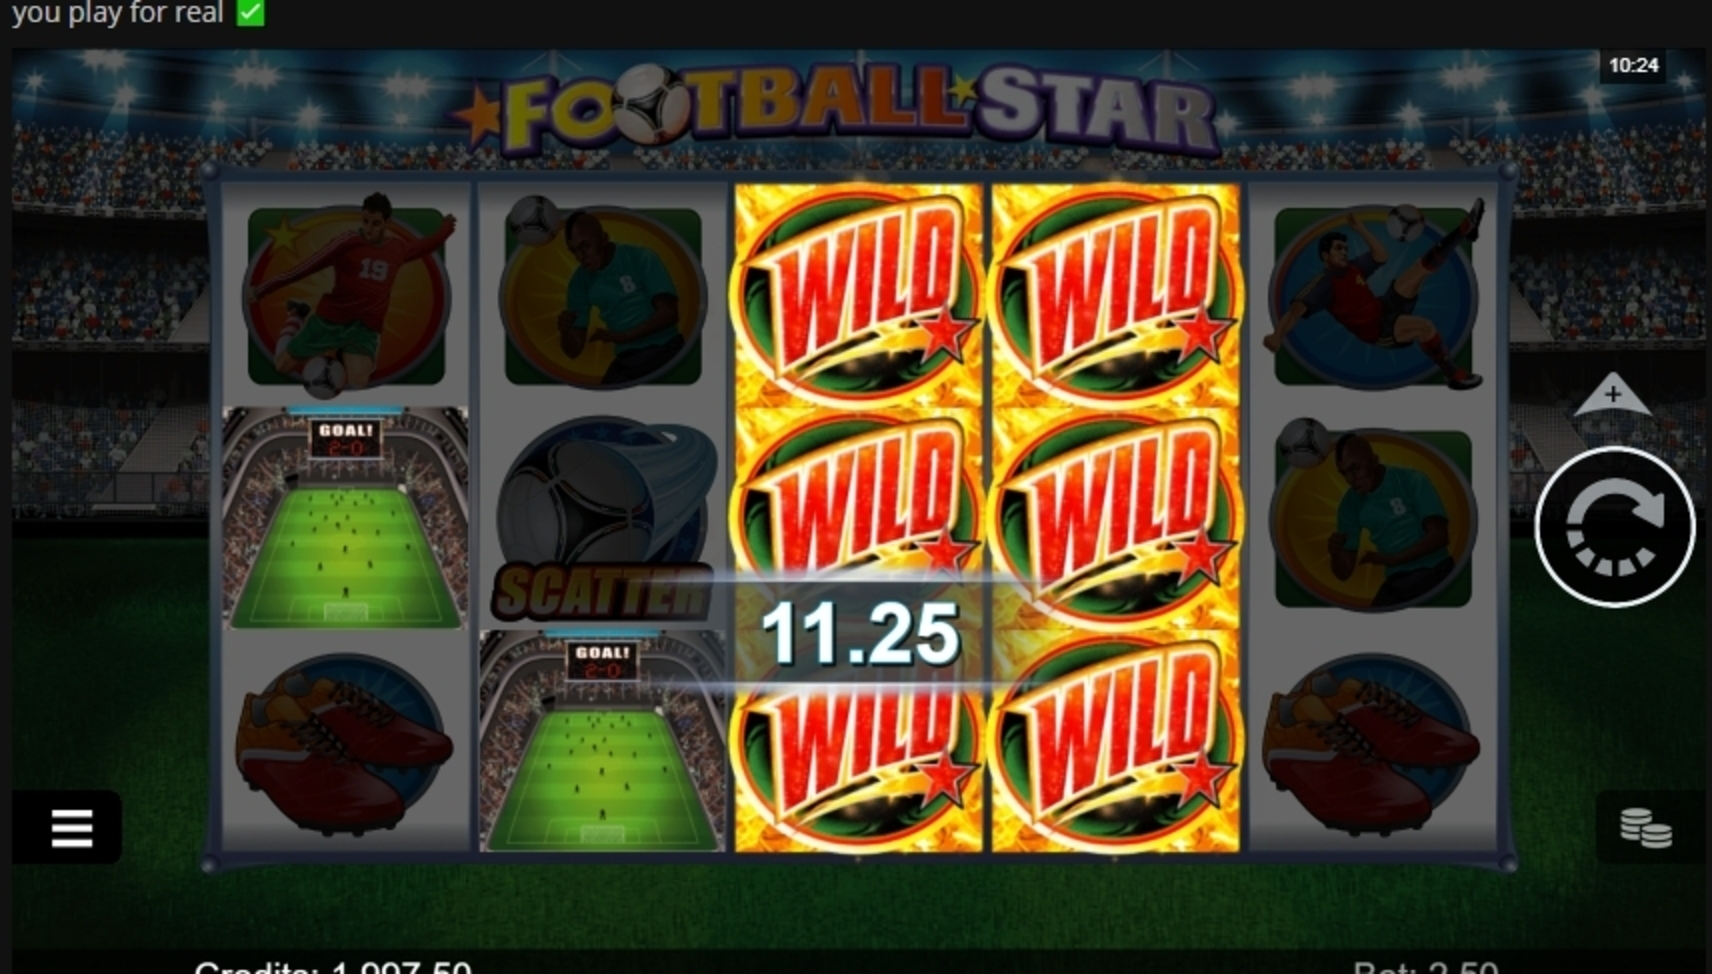 Win Money in Football Star (Microgaming) Free Slot Game by Microgaming